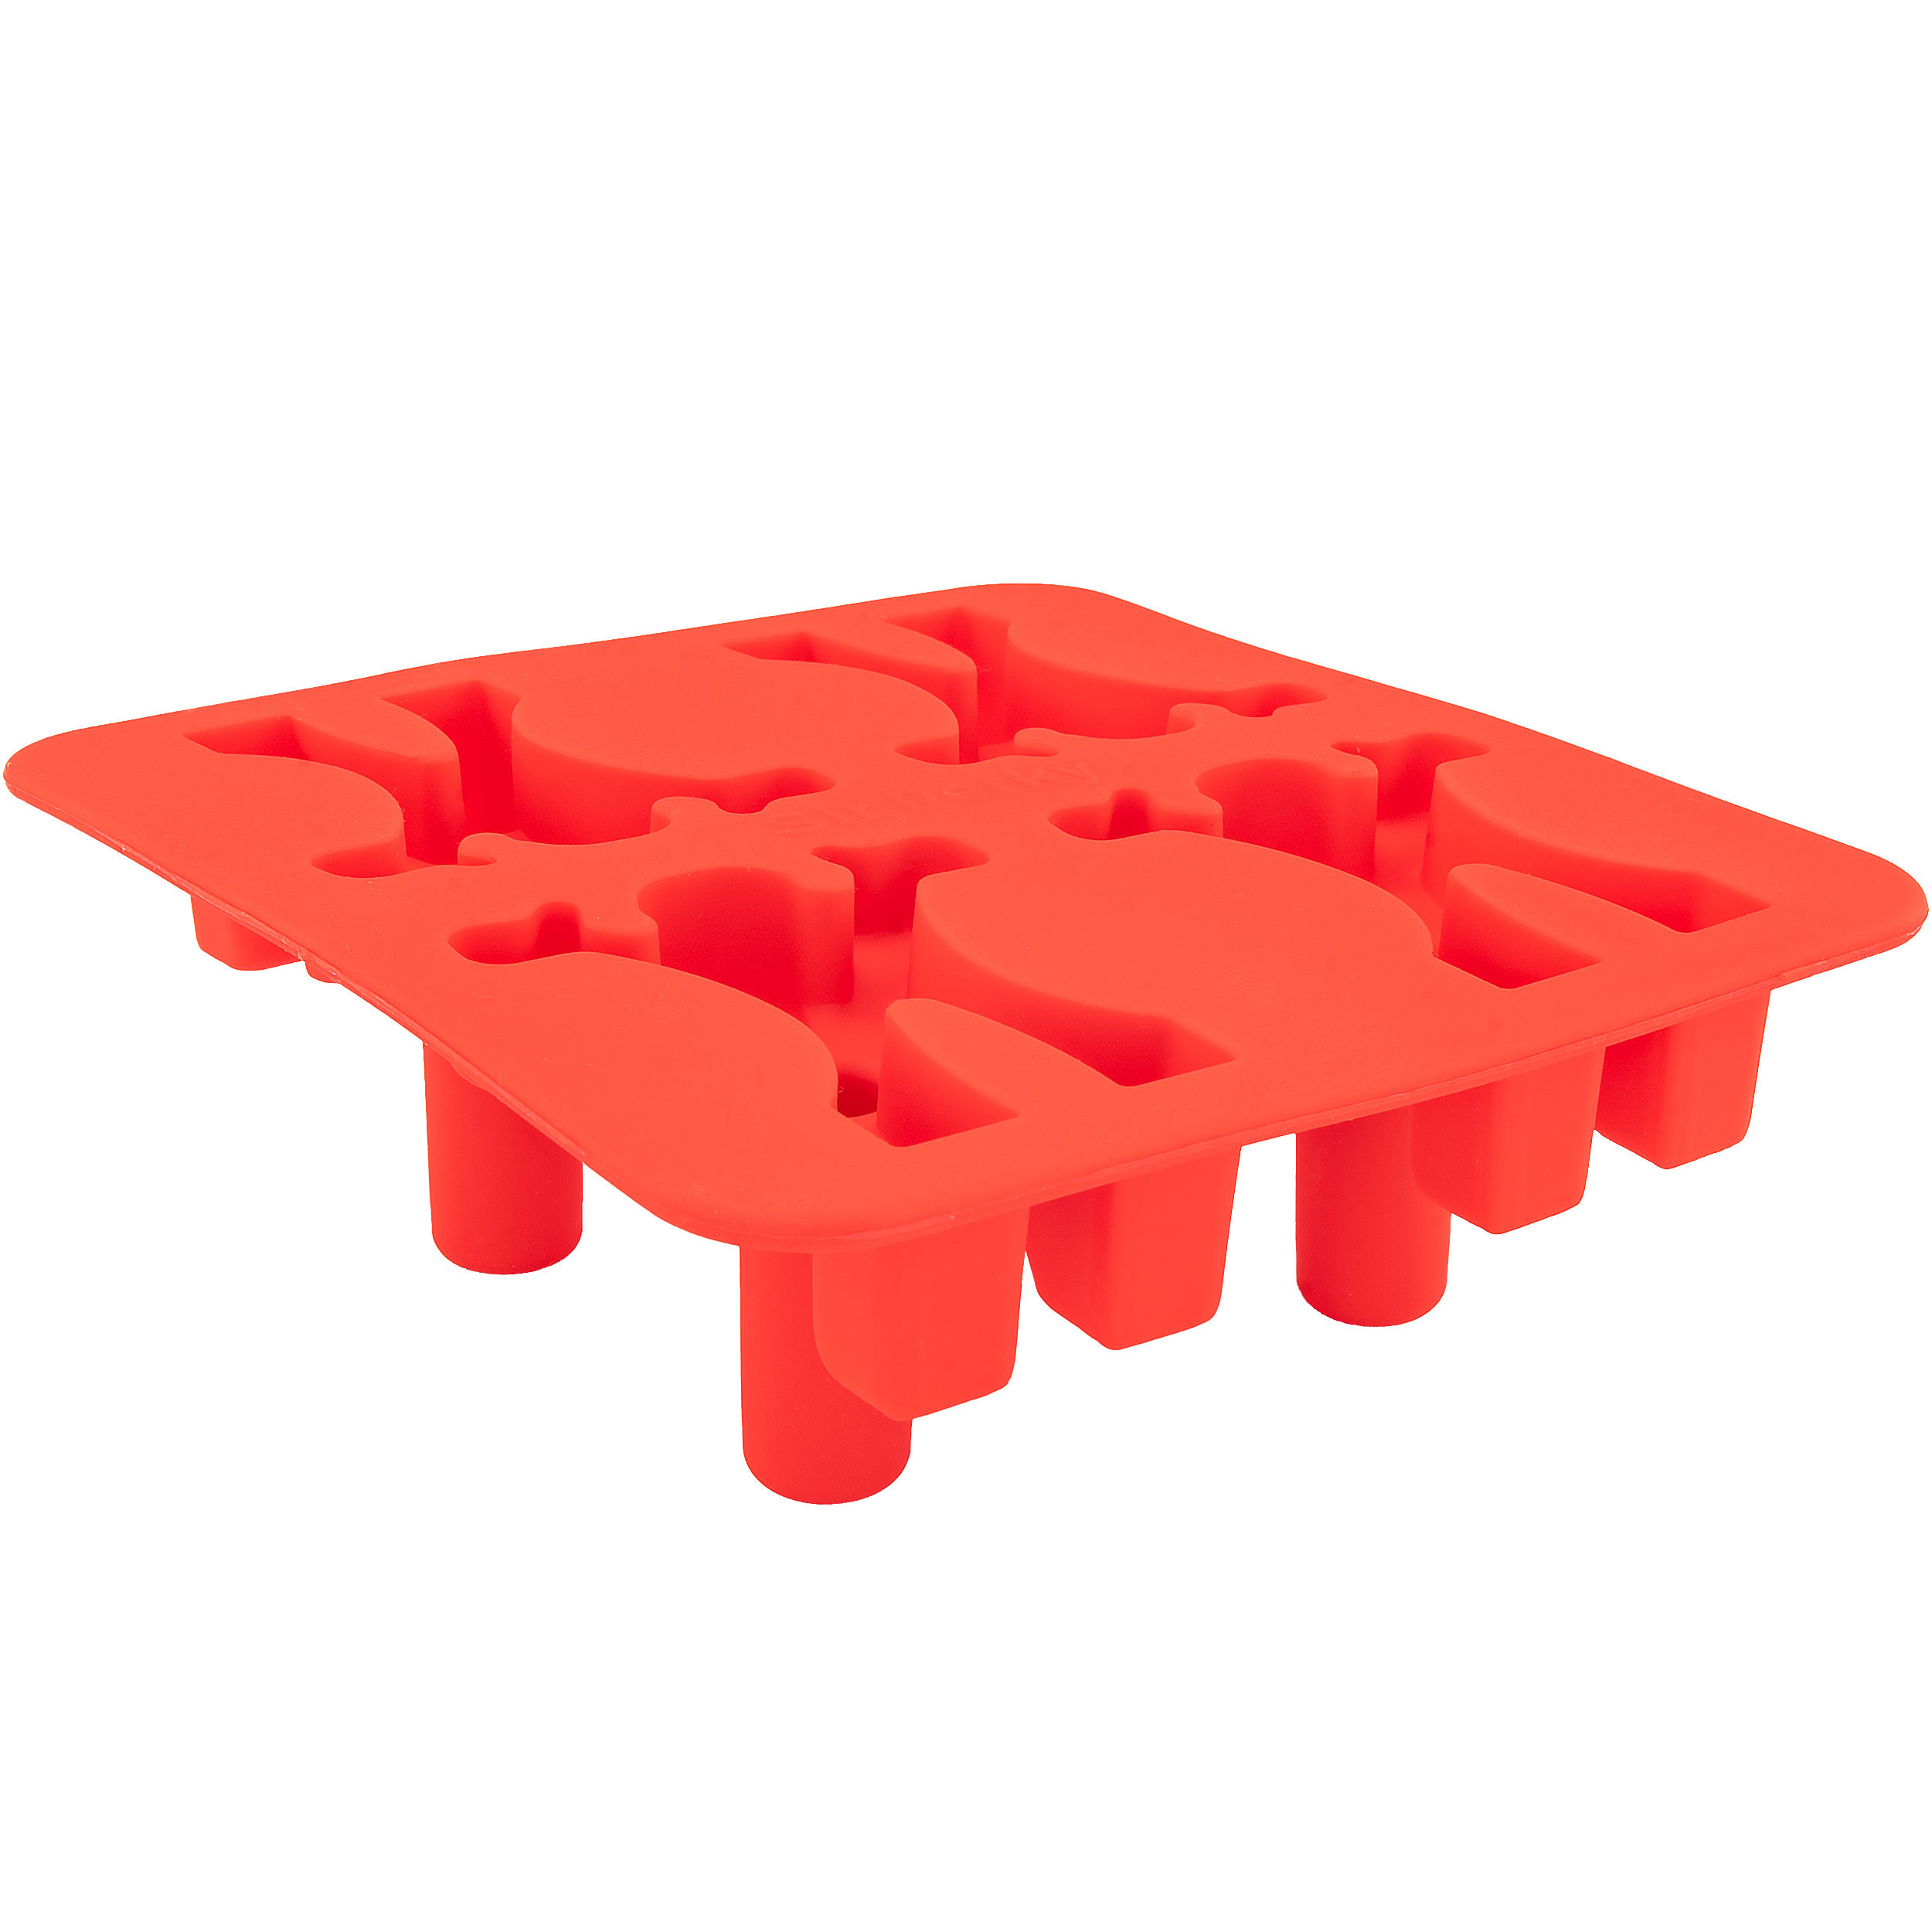 Sir Perky Ice Cube Tray / Baking Mold